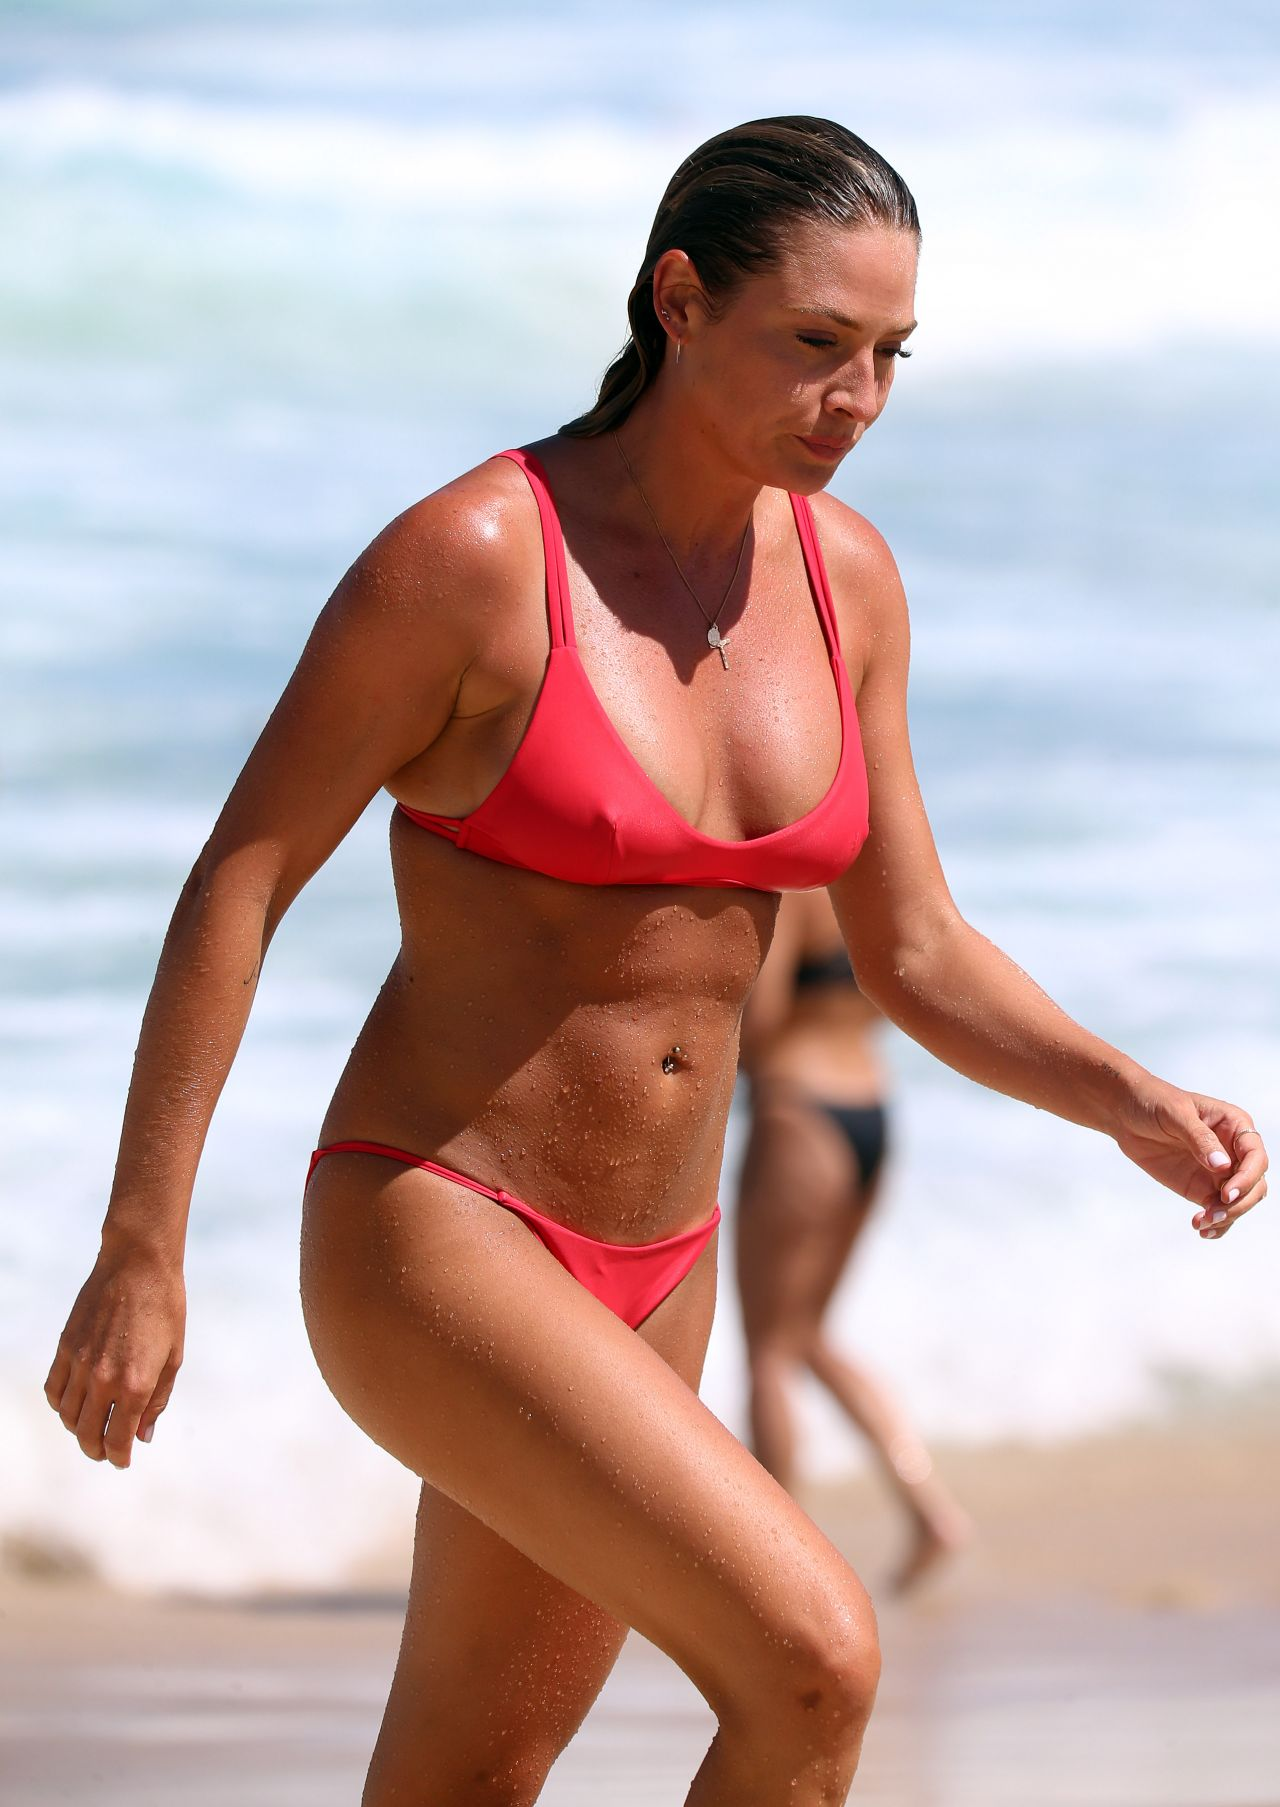 Lisa Clarke in Red Bikini at the beach in Sydney Pic 9 of 35